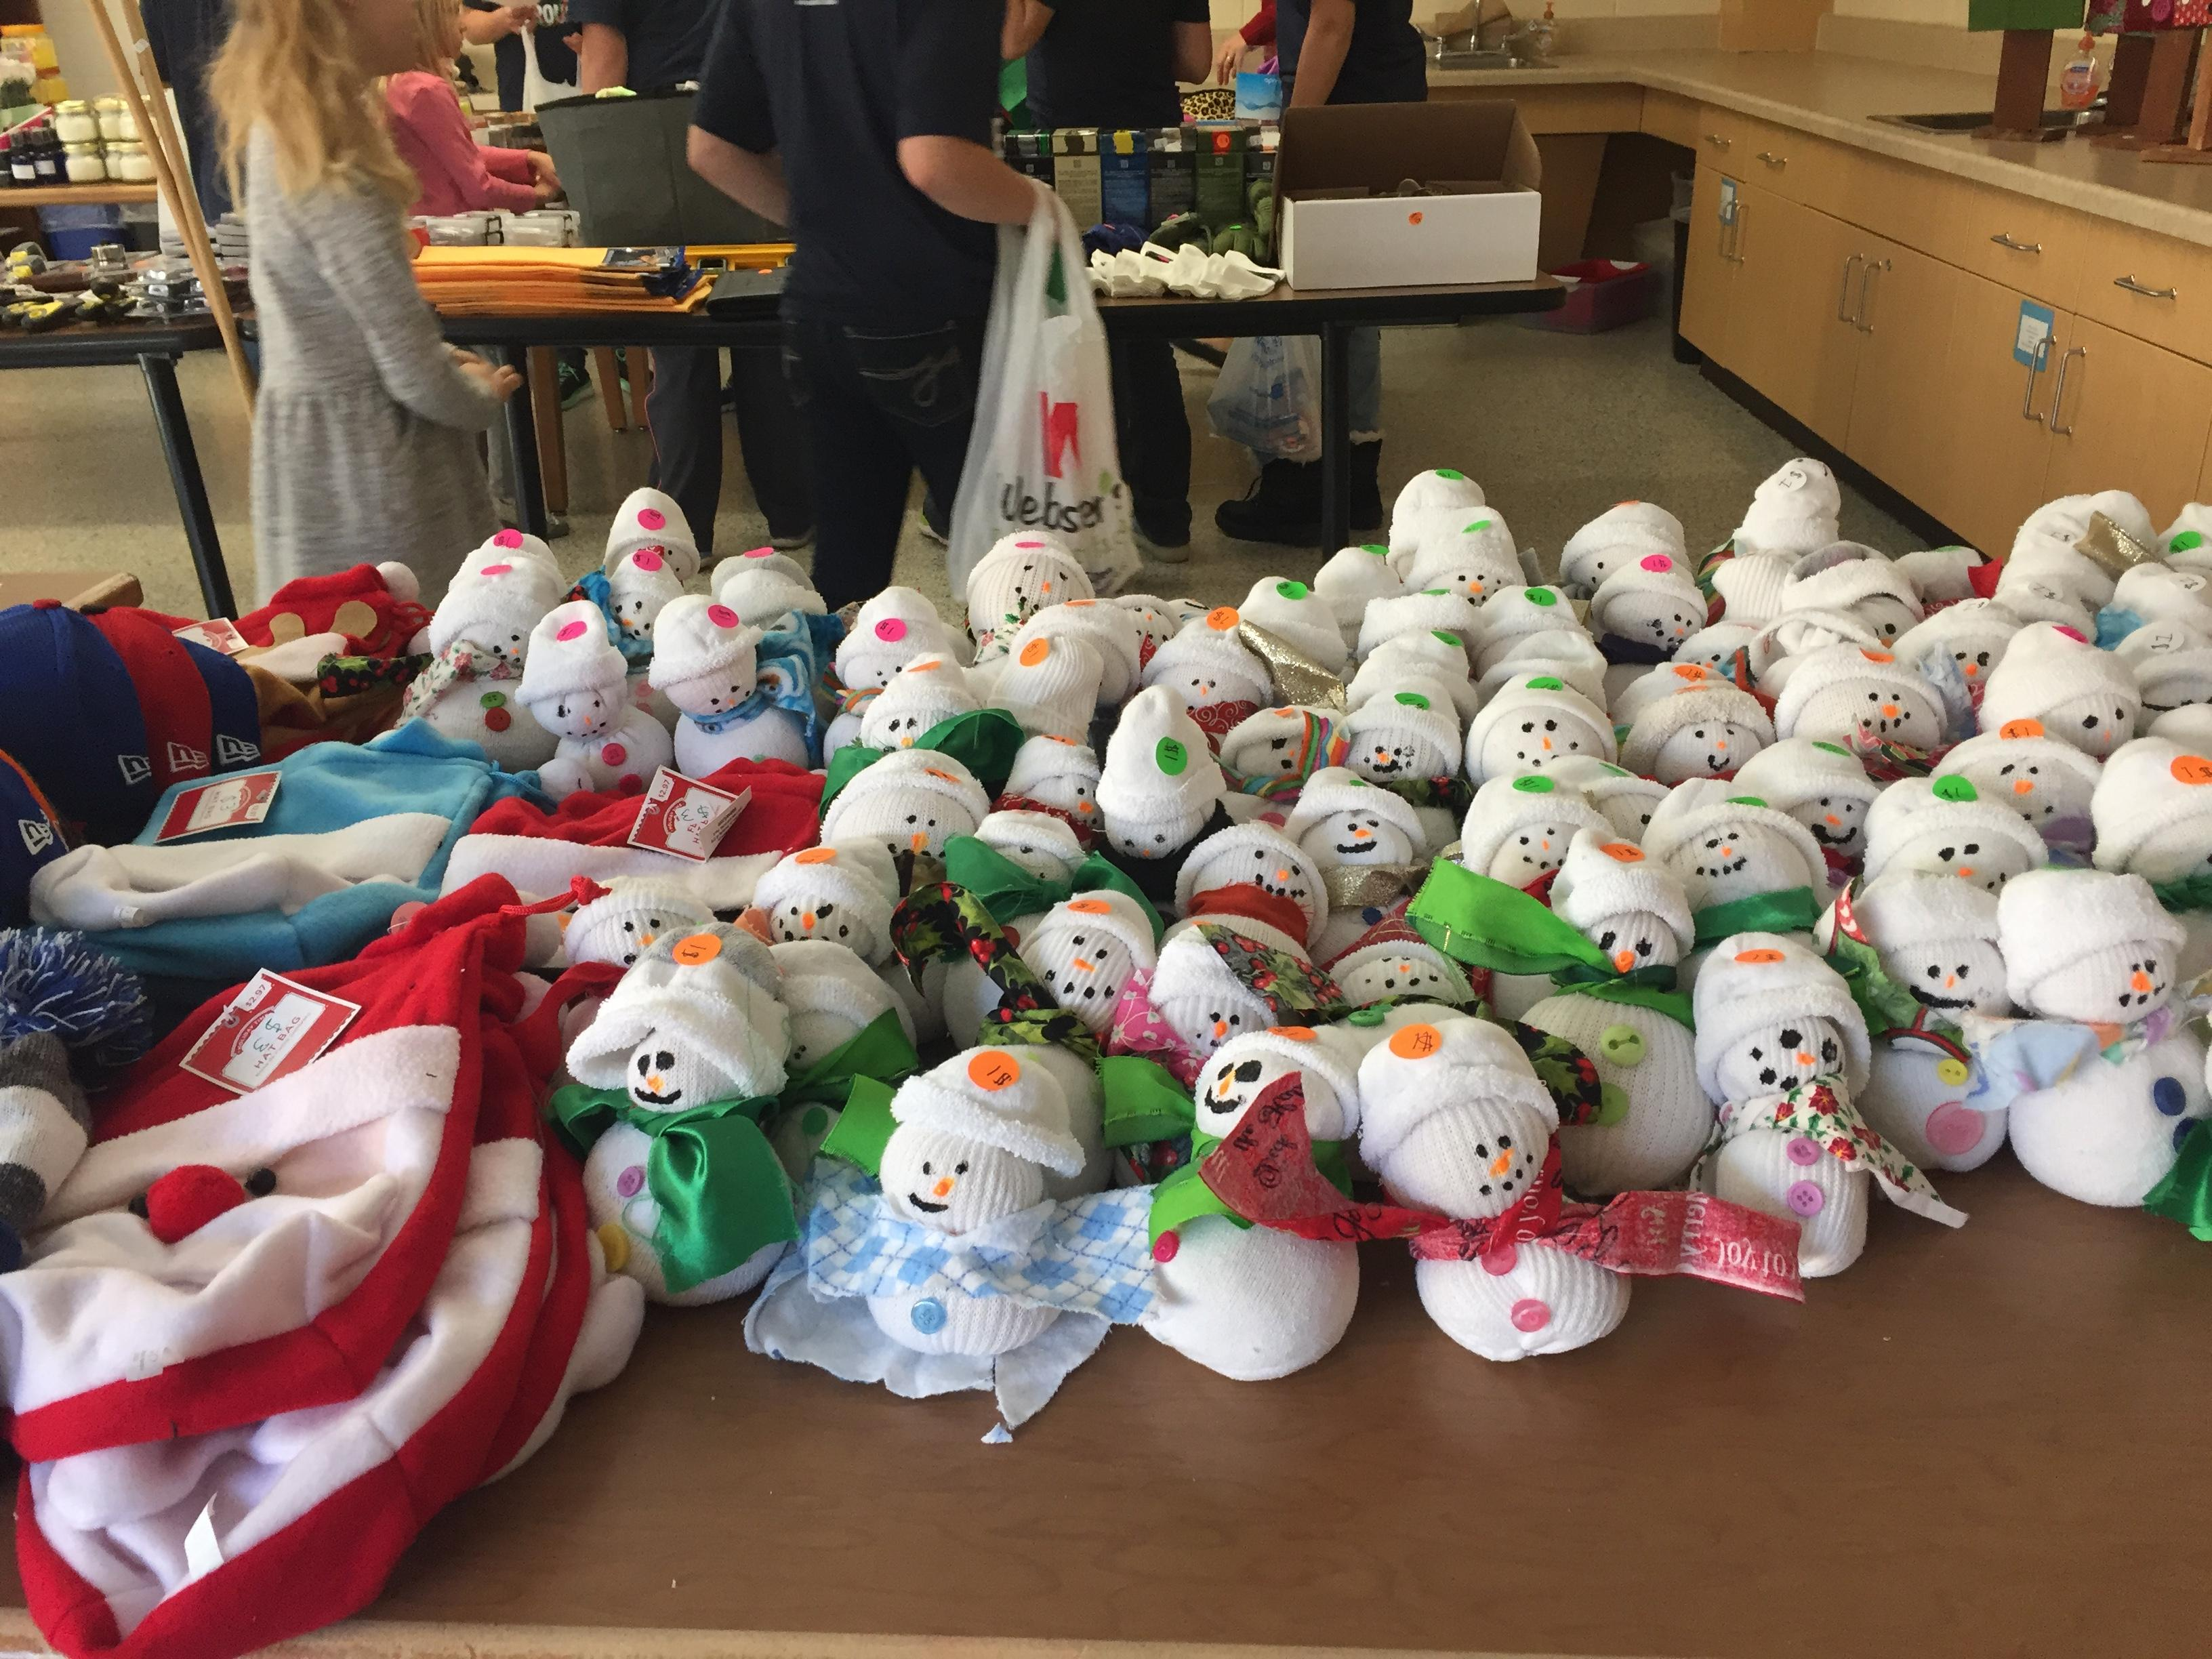 Sock snowmen made by fifth graders at Clay Lamberton Elementary School{&amp;nbsp;}Tuesday, December 19, 2017. (WLUK/Pafoua Yang) <p></p>